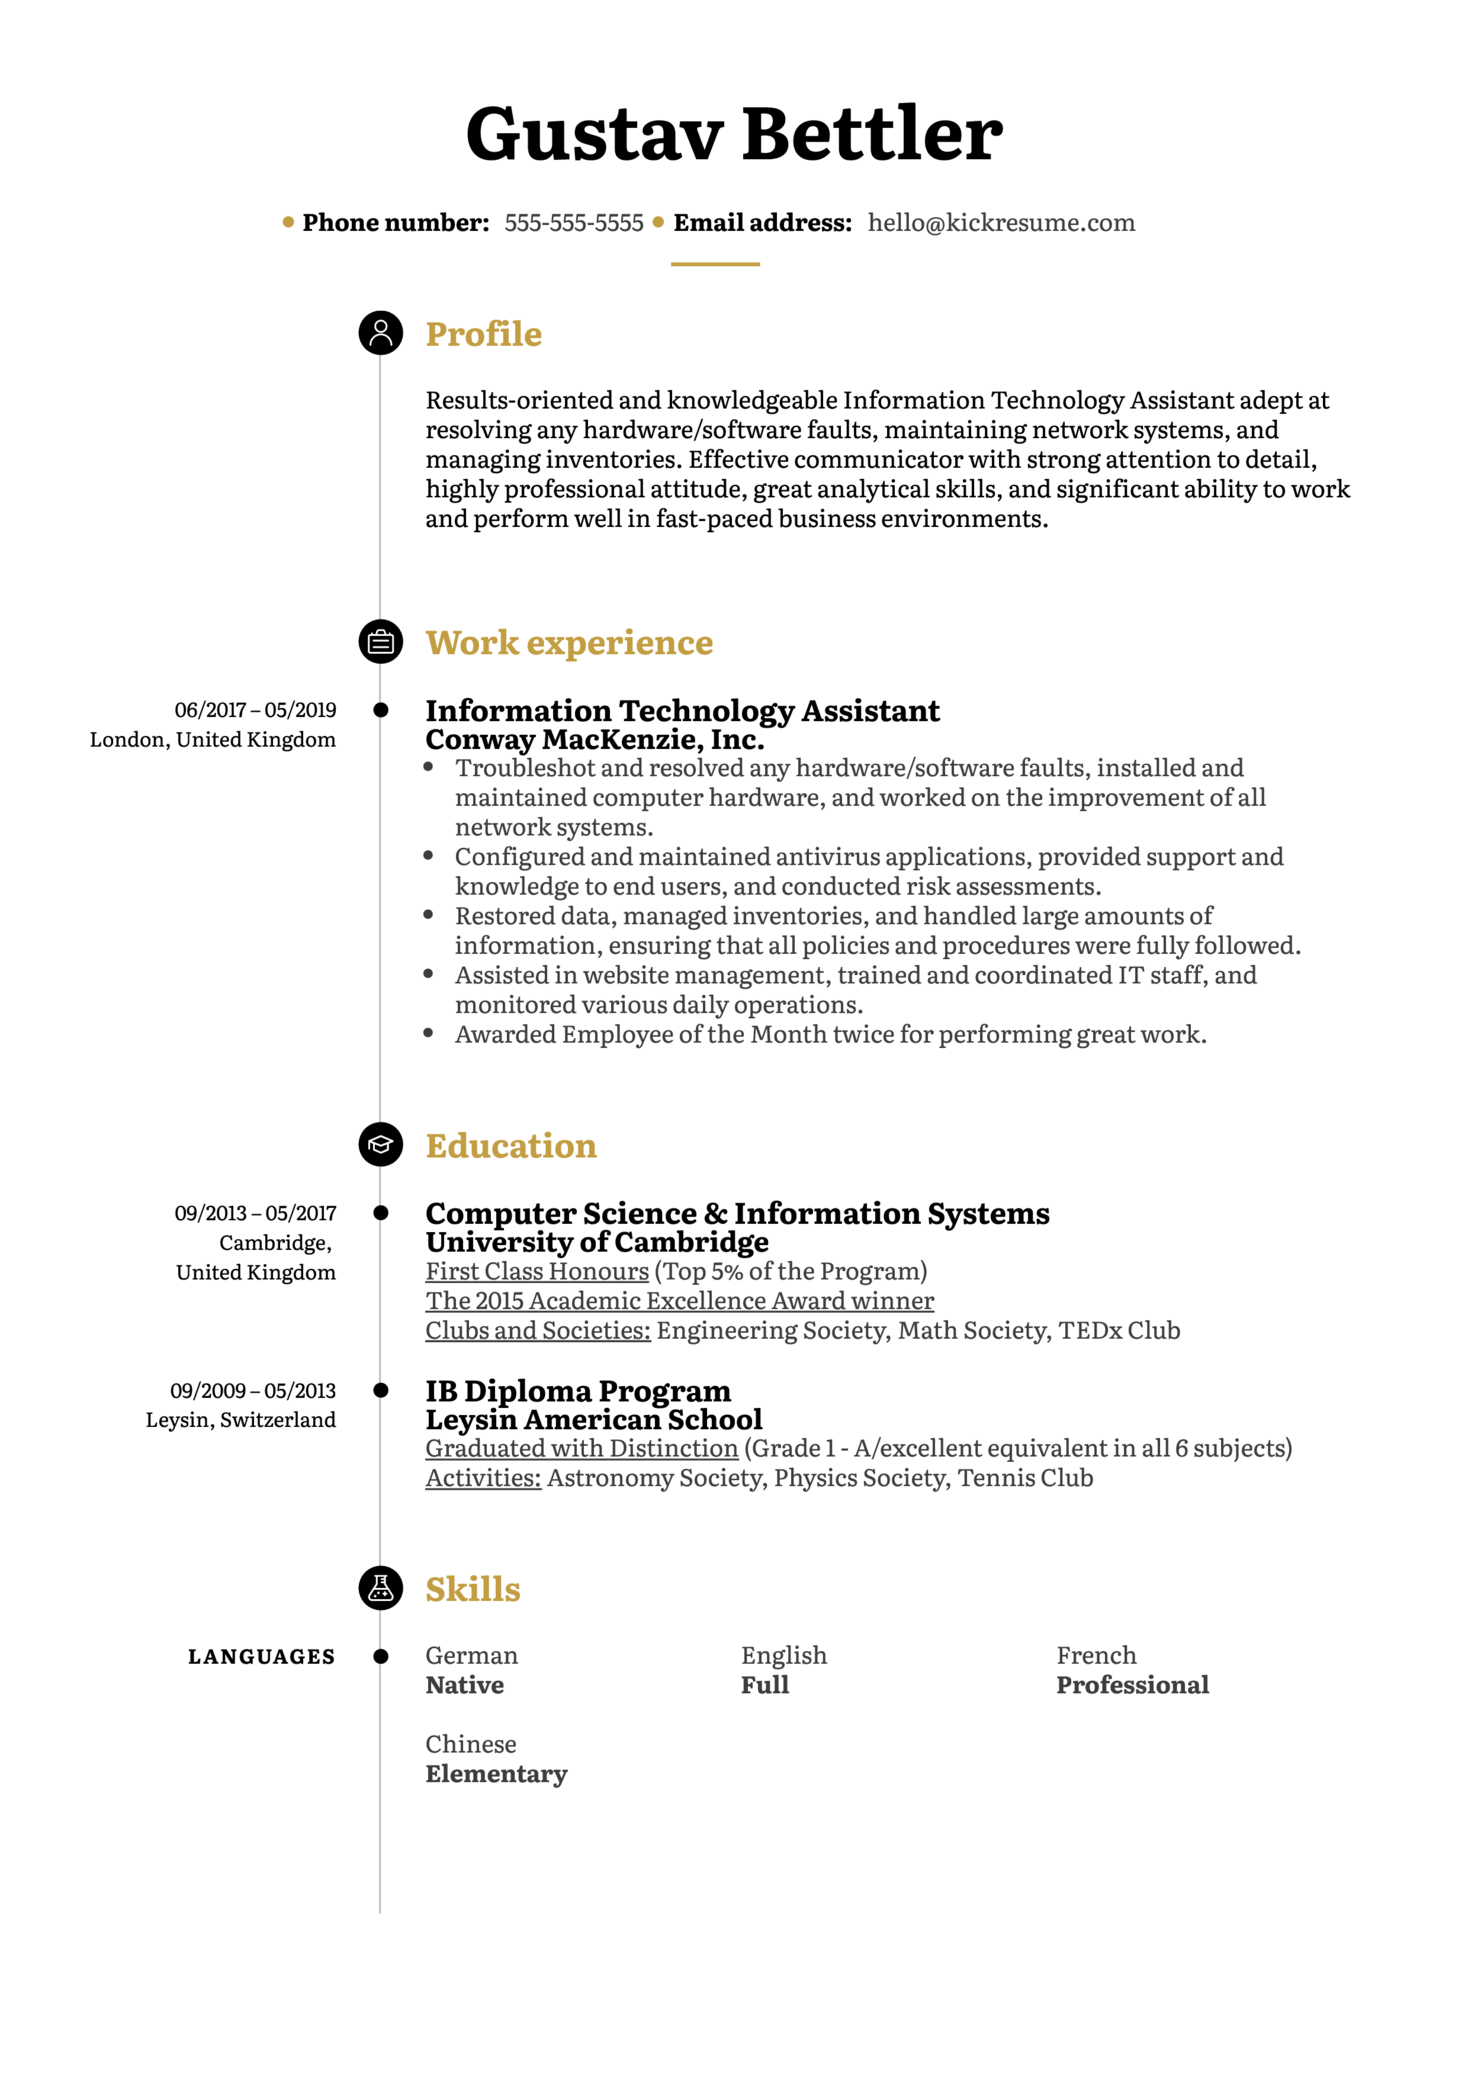 Information Technology Assistant Resume Sample (časť 1)